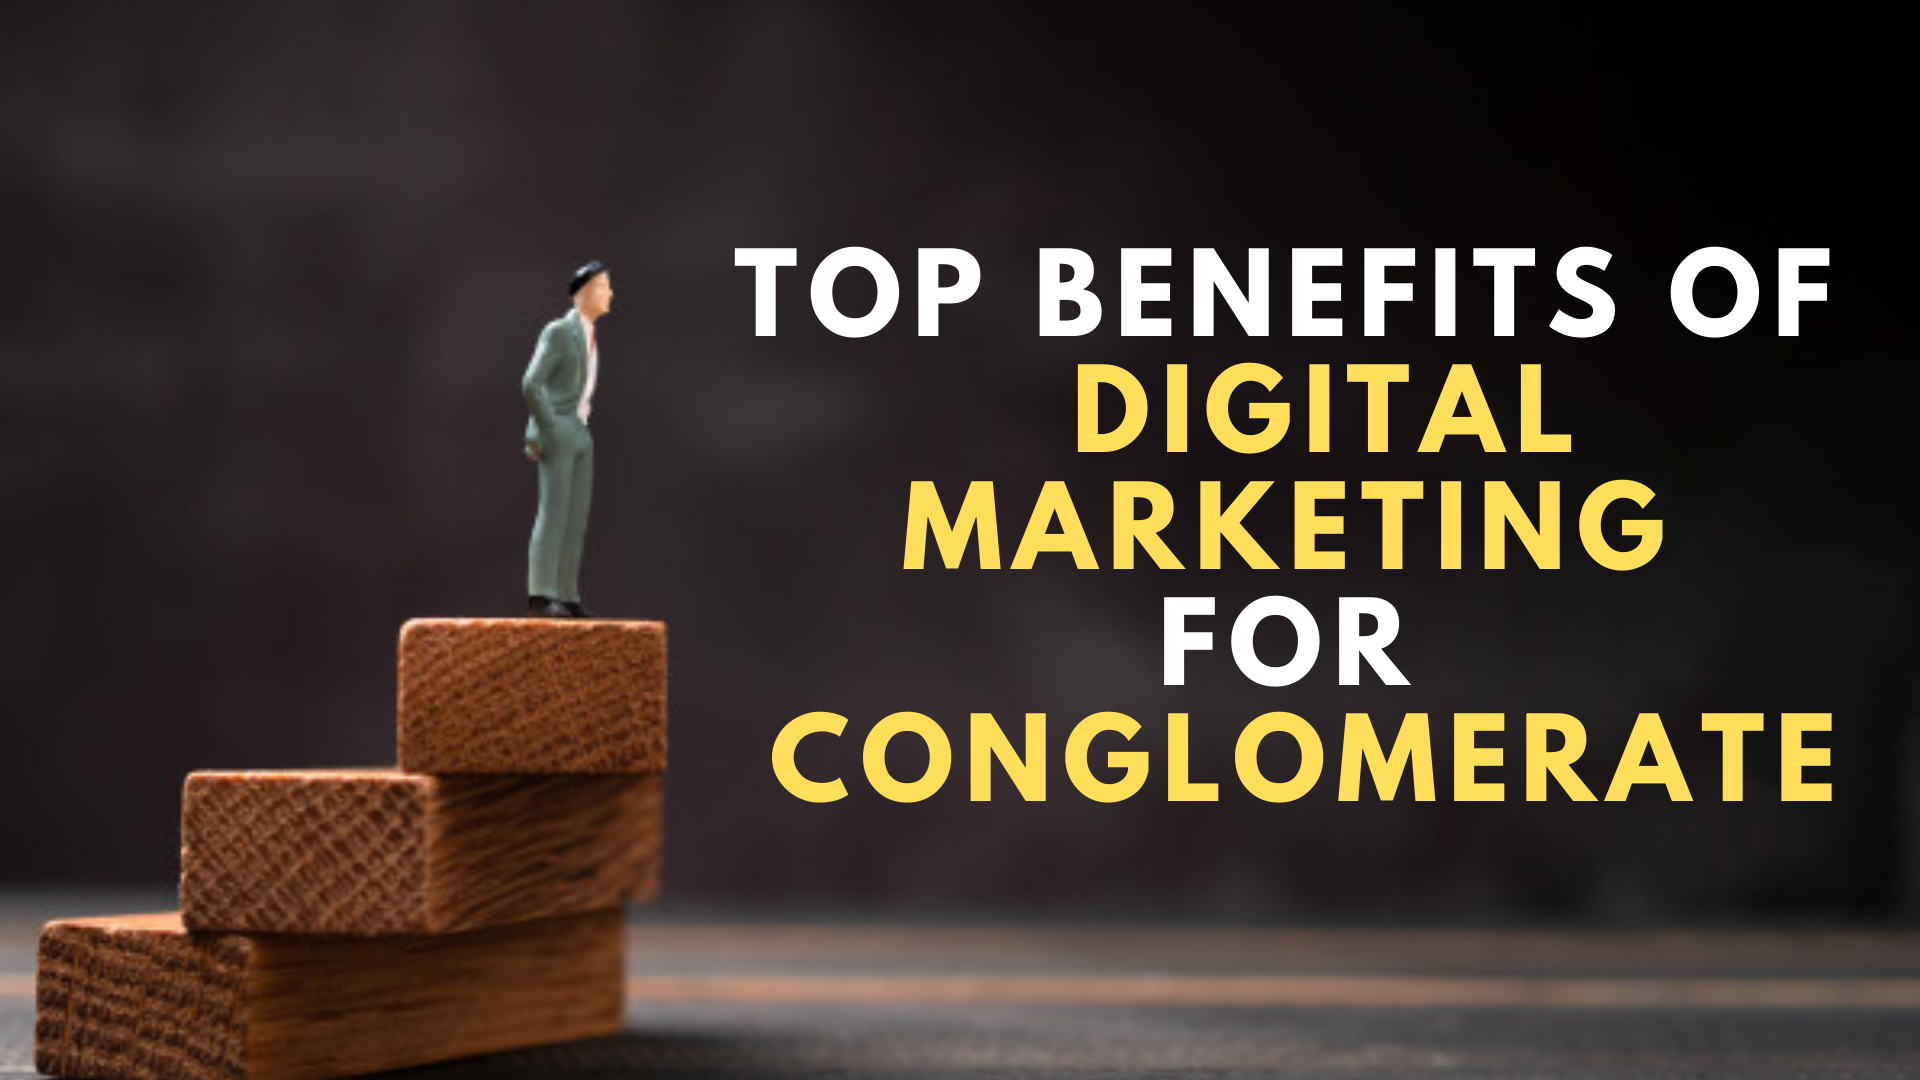 Top Benefits of Digital Marketing for Conglomerate